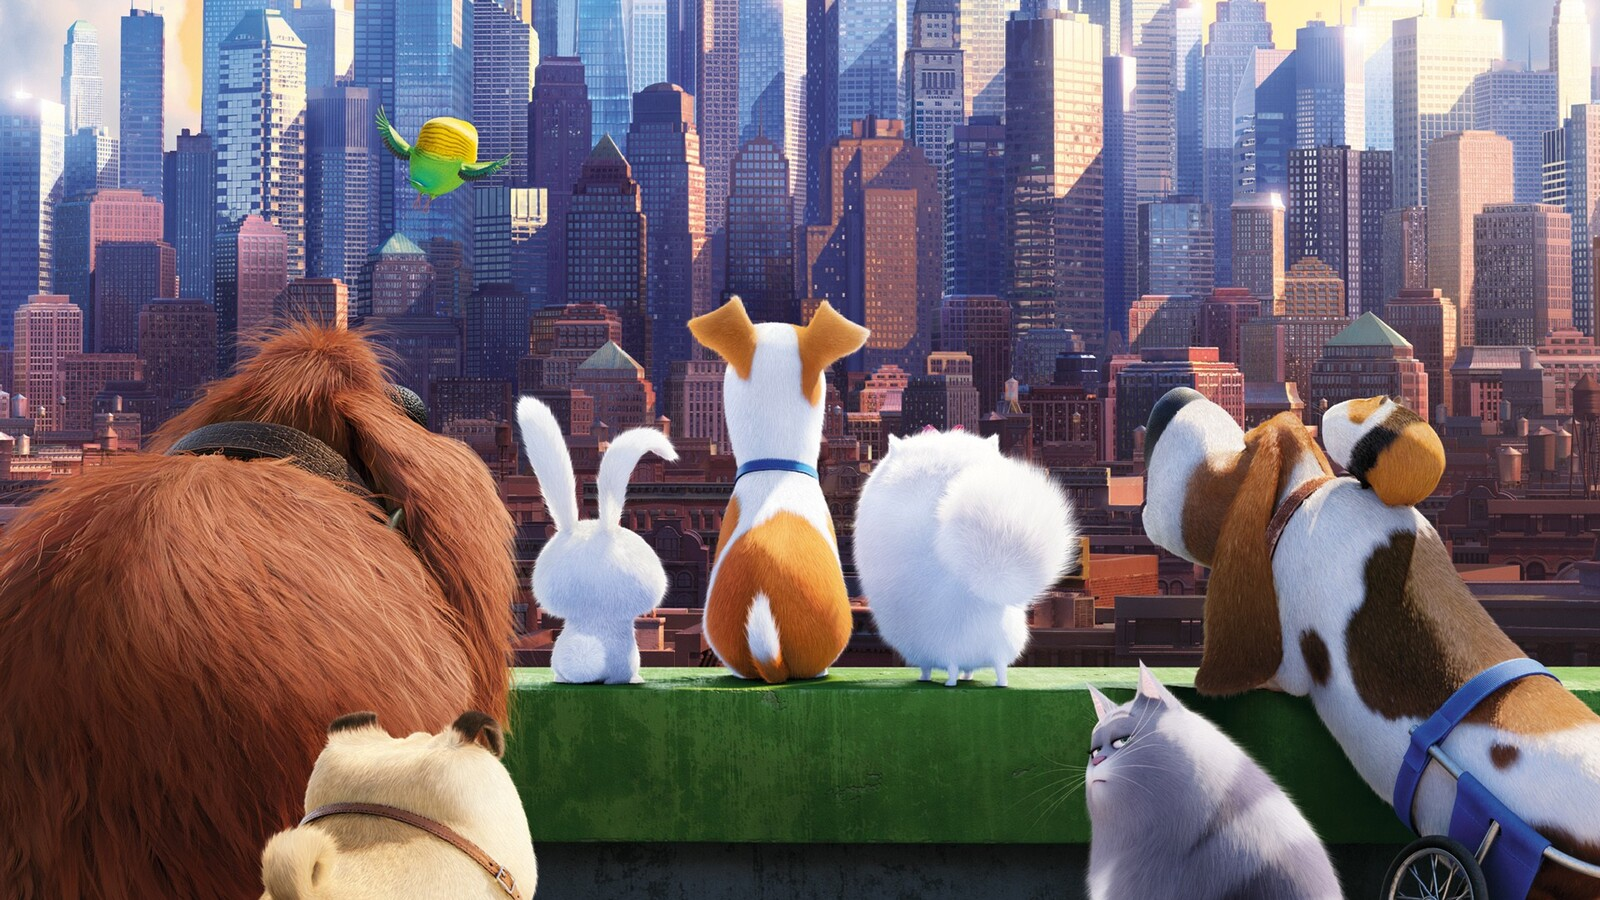 The Secret Life Of Pets Wallpaper: 1600x900 The Secrete Life Of Pets Movie 1600x900